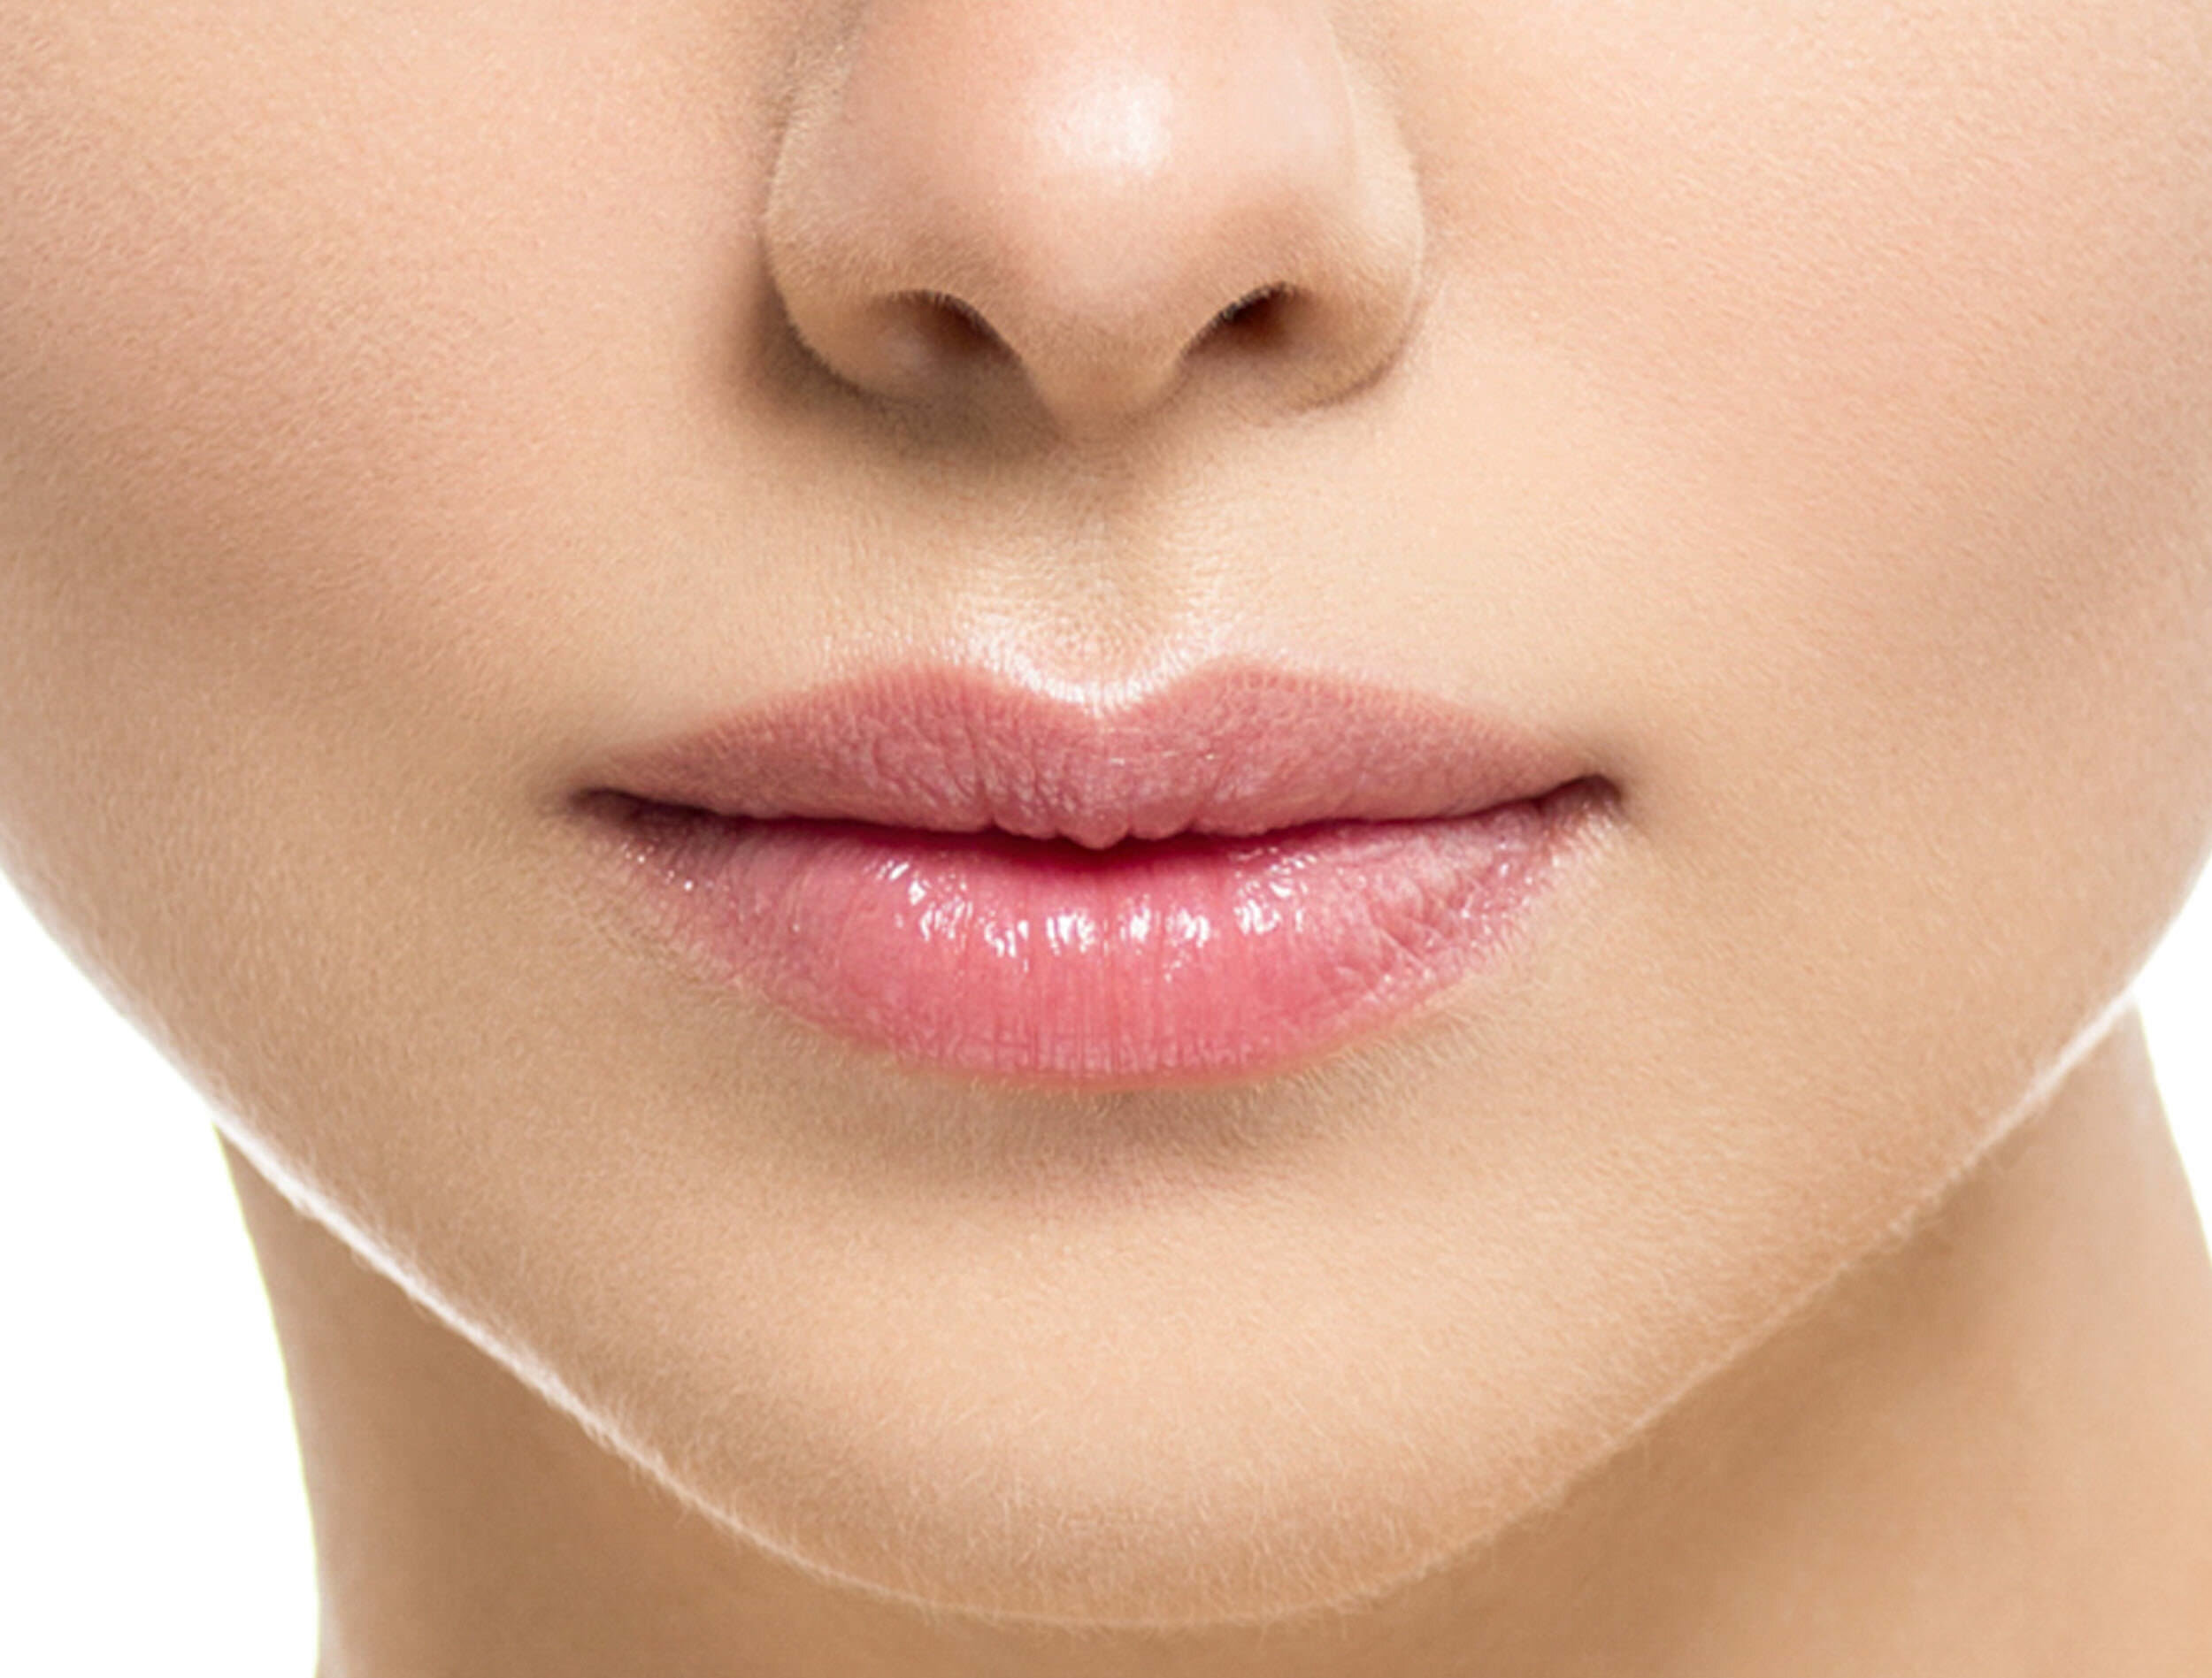 Lips - Juvederm - Plump Up Kissable Lips, Natural Looking Enhancement